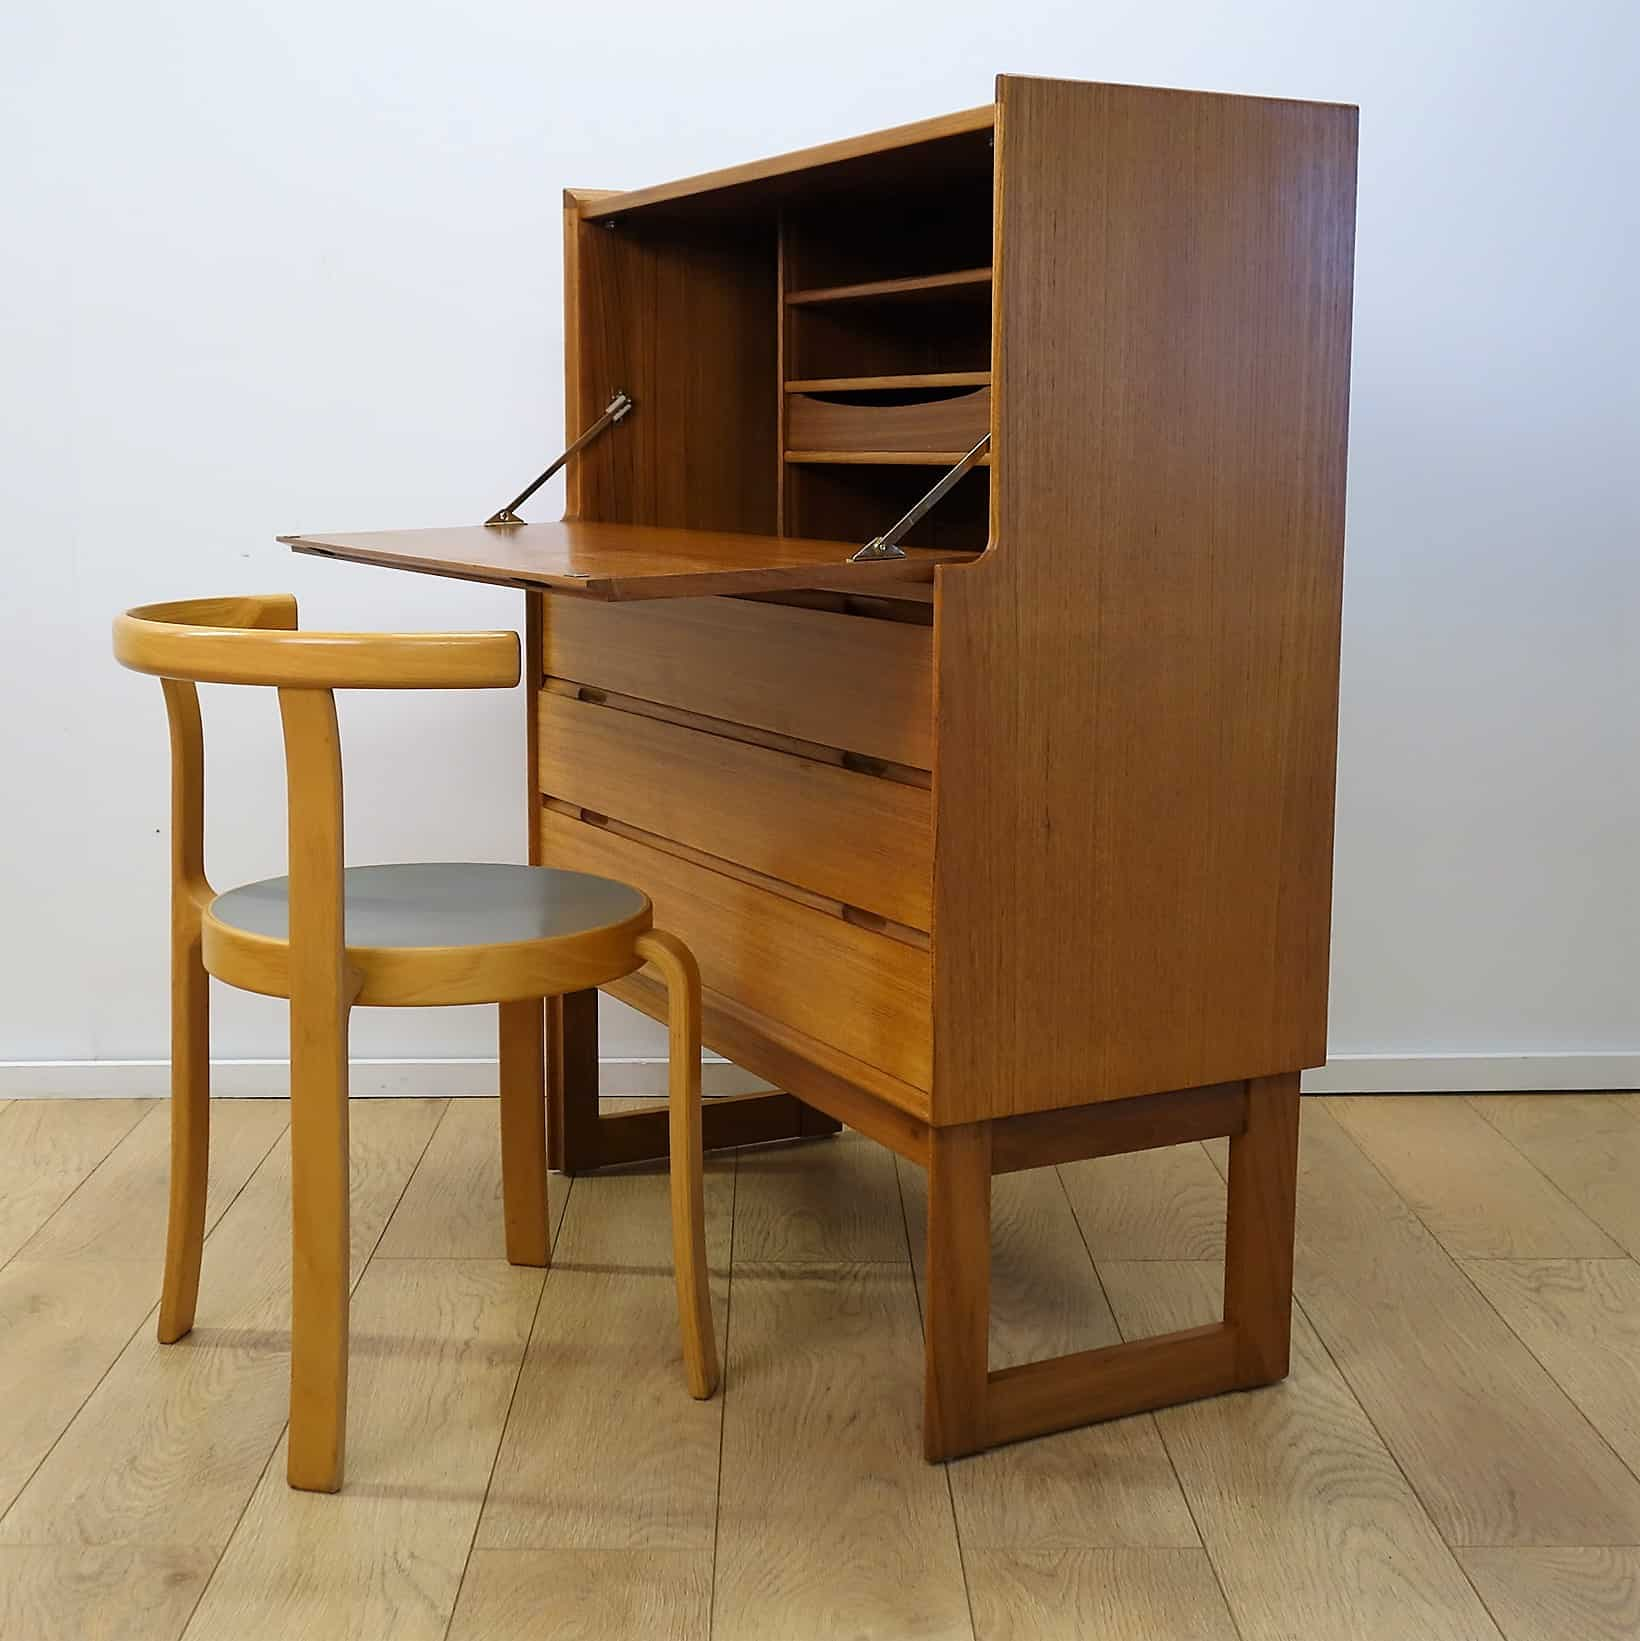 60s teak desk bureau by turnidge london mark parrish mid century modern. Black Bedroom Furniture Sets. Home Design Ideas